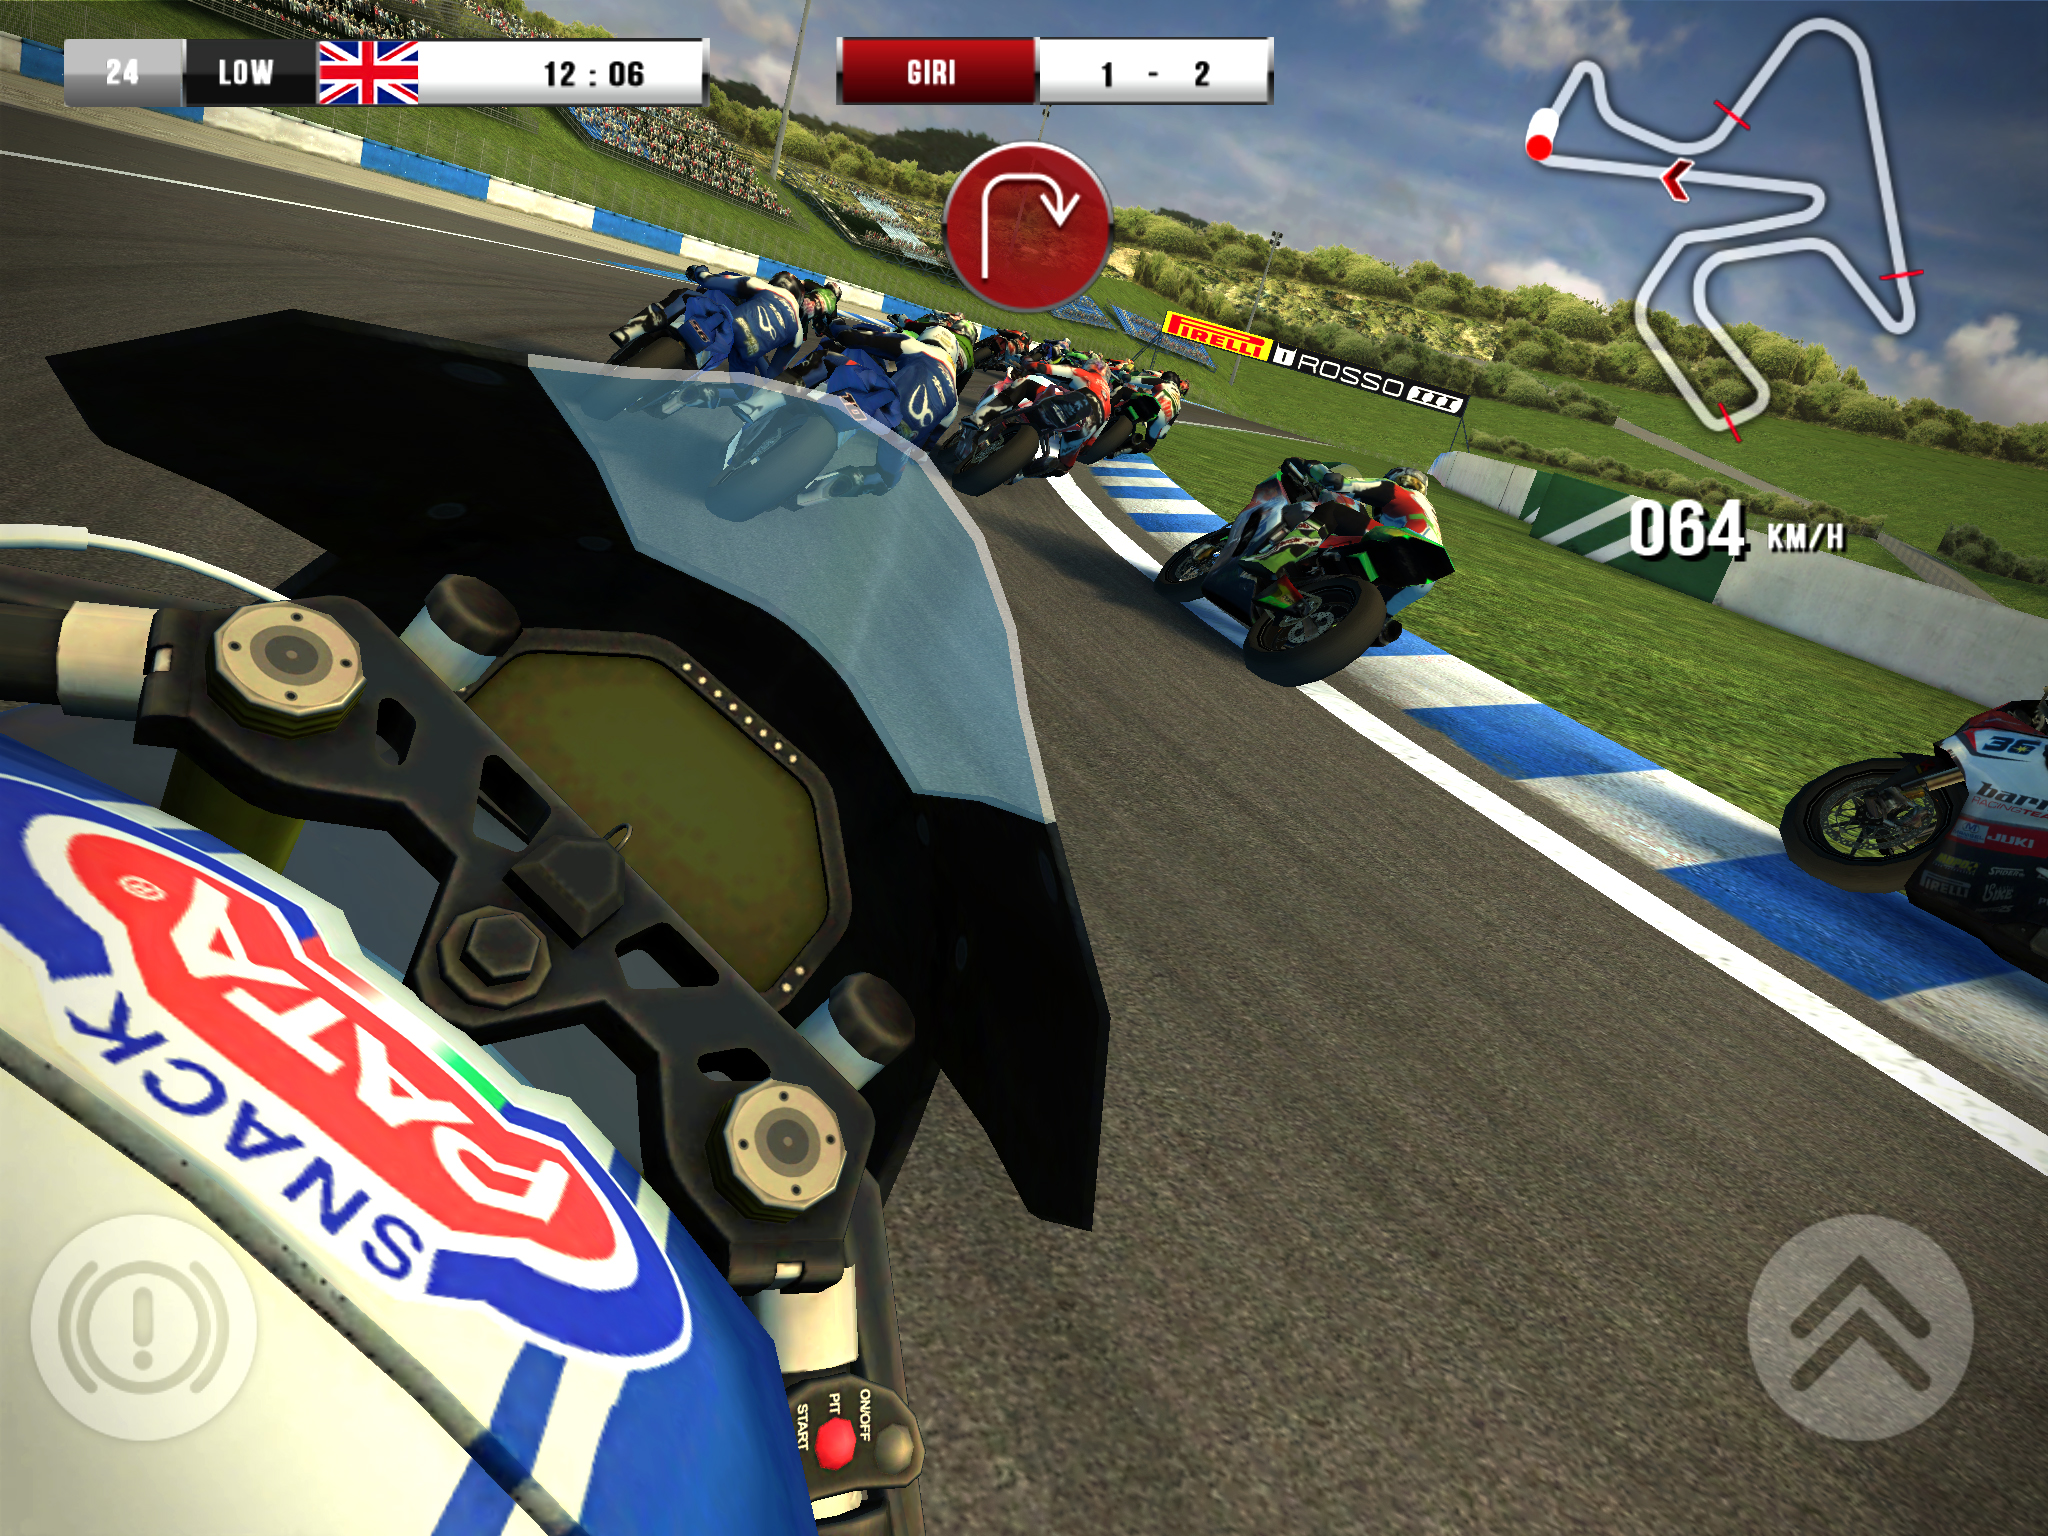 Motobike SBK15 Mobile Game